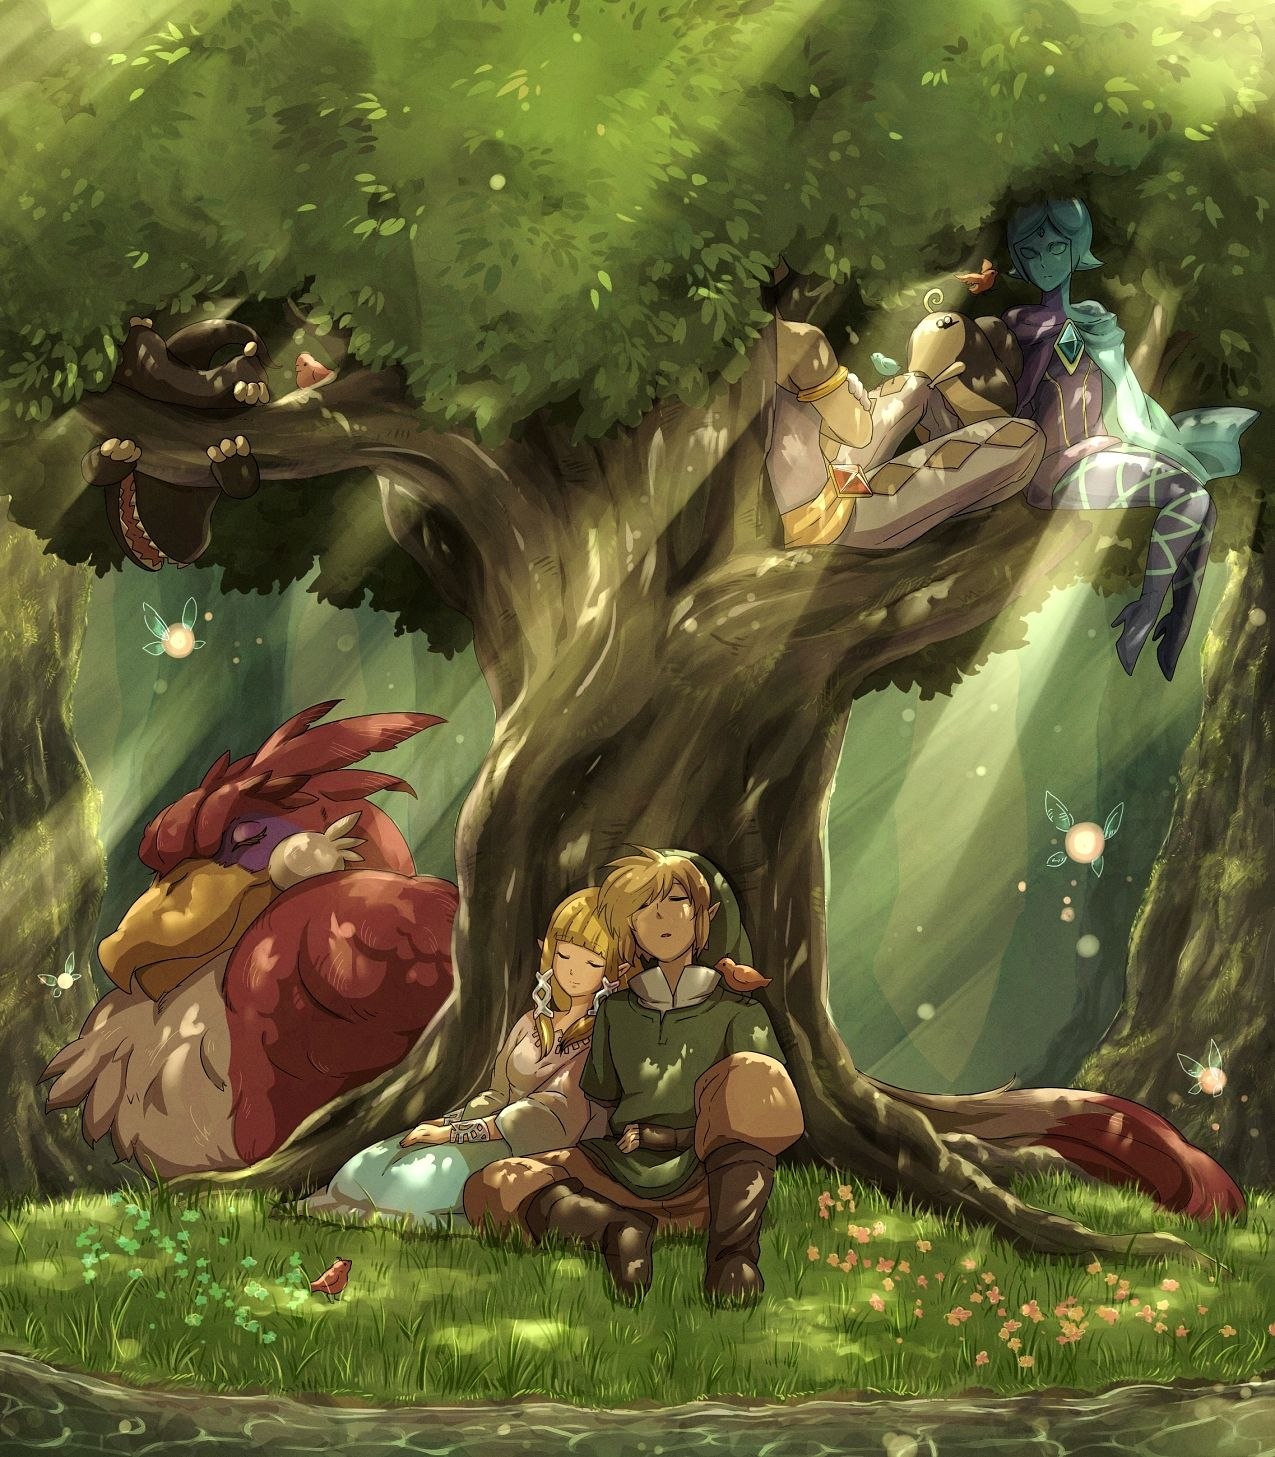 Zelda Wallpapers: Zelda No Densetsu (The Legend Of Zelda)